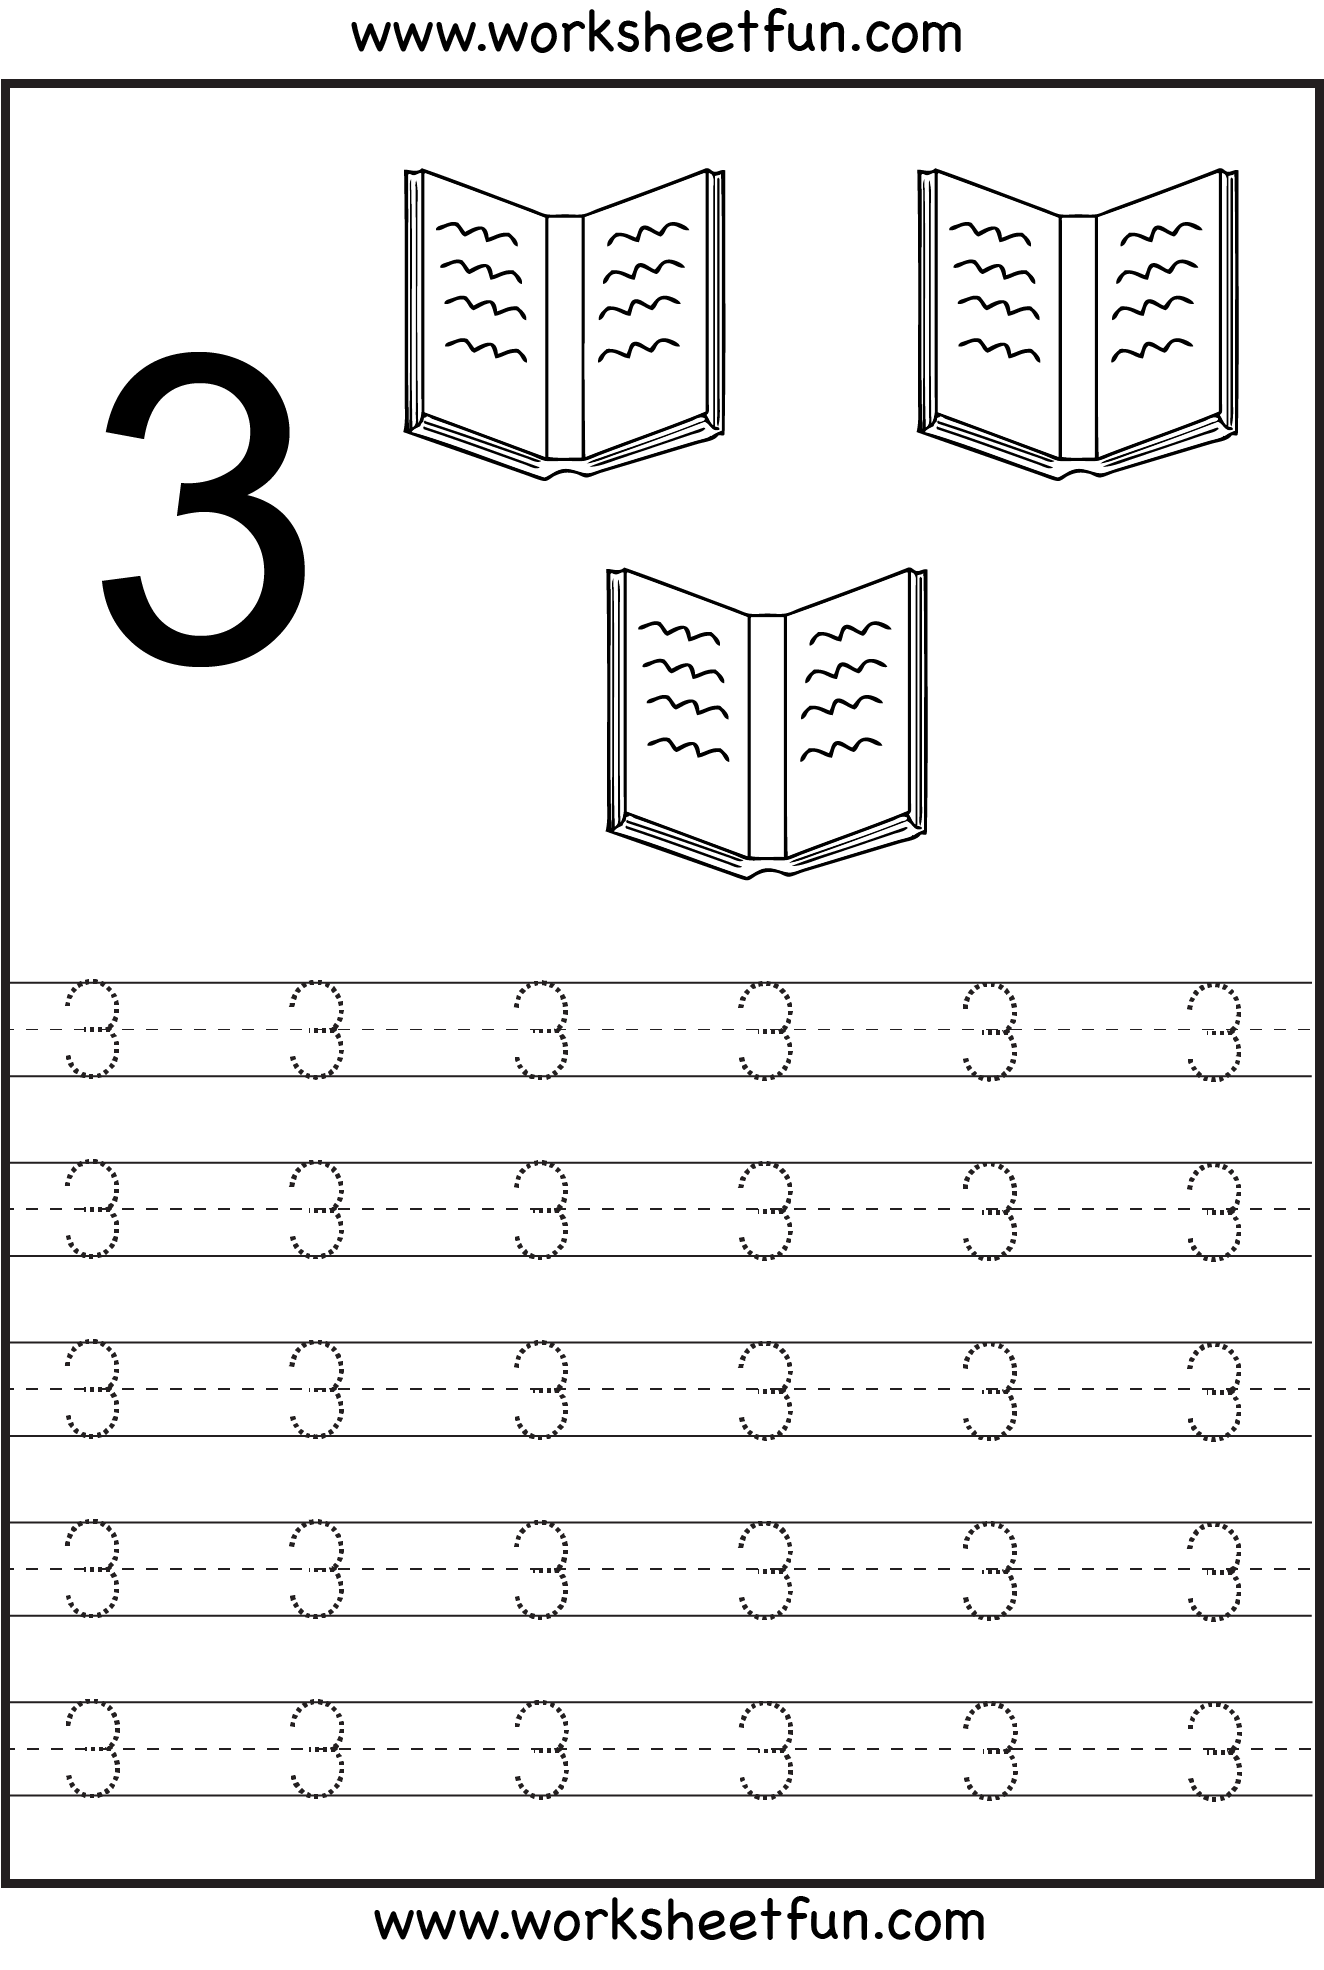 Preschool Kindergarten Printable Worksheets : Number worksheets for preschool lesupercoin printables